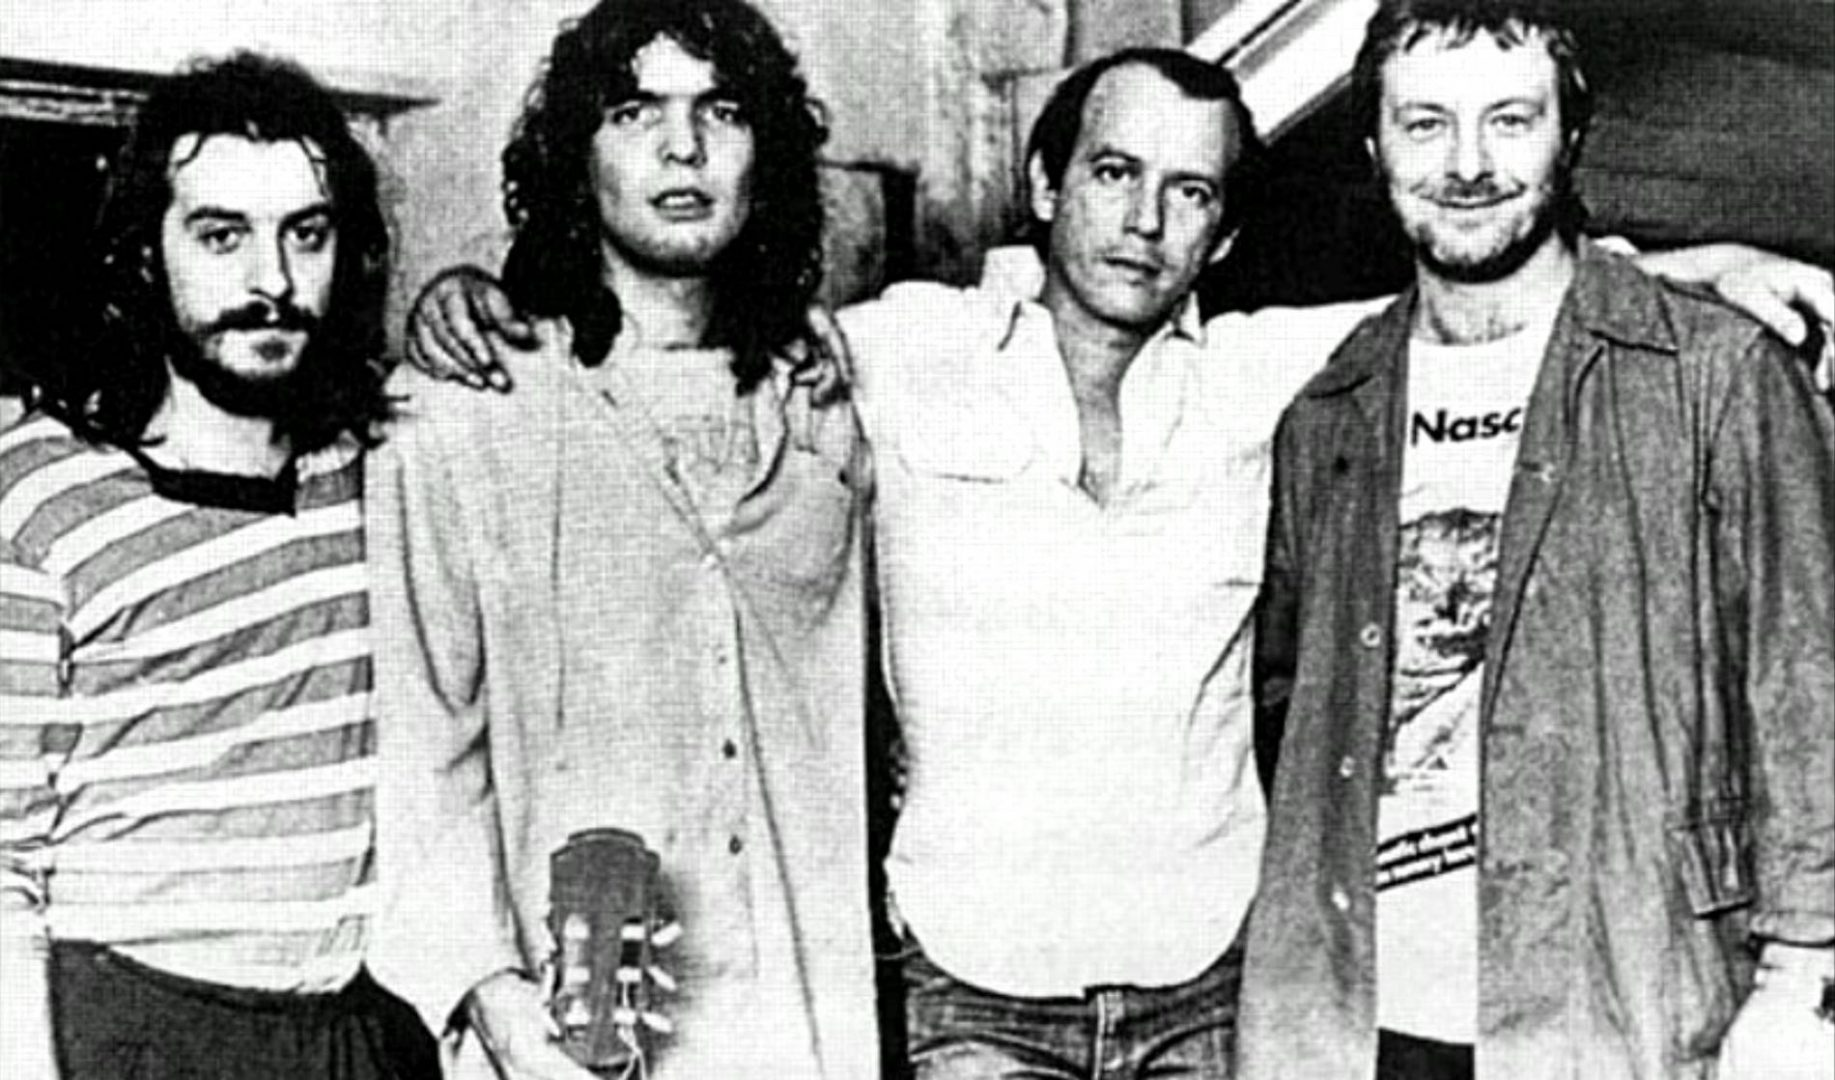 From left to right: Juan Carlos Baglietto, Santiago Feliú, Silvio Rodríguez and Leon Gieco.